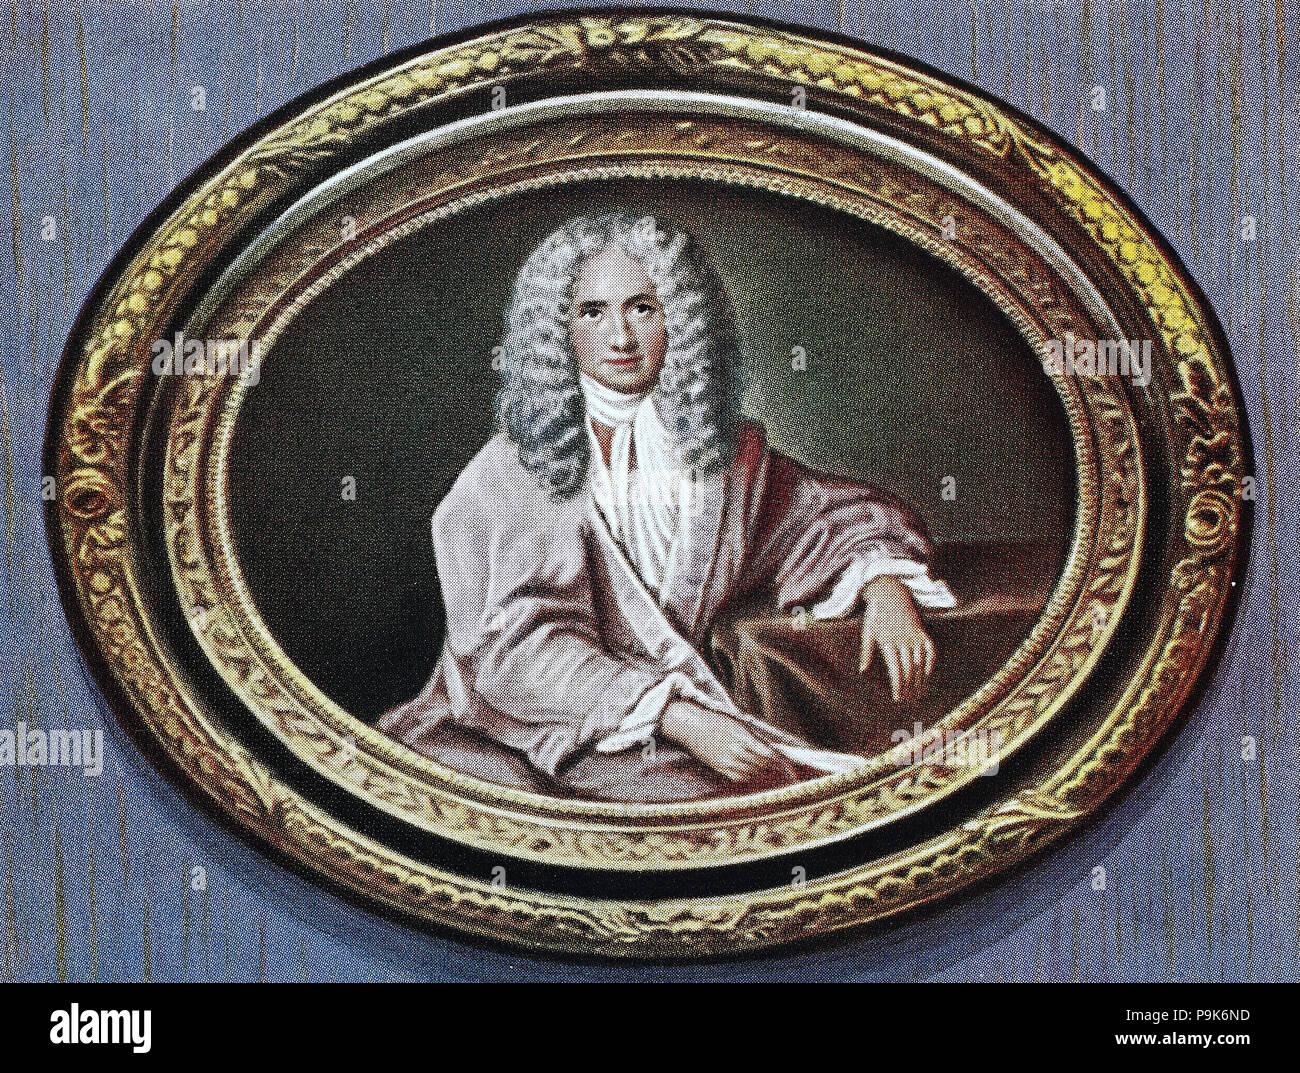 Francois-Marie Arouet, 21 November 1694 - 30 May 1778, known by his nom de plume Voltaire, was a French Enlightenment writer, historian and philosopher famous for his wit, digital improved reproduction of an original print from the year 1900 Stock Photo